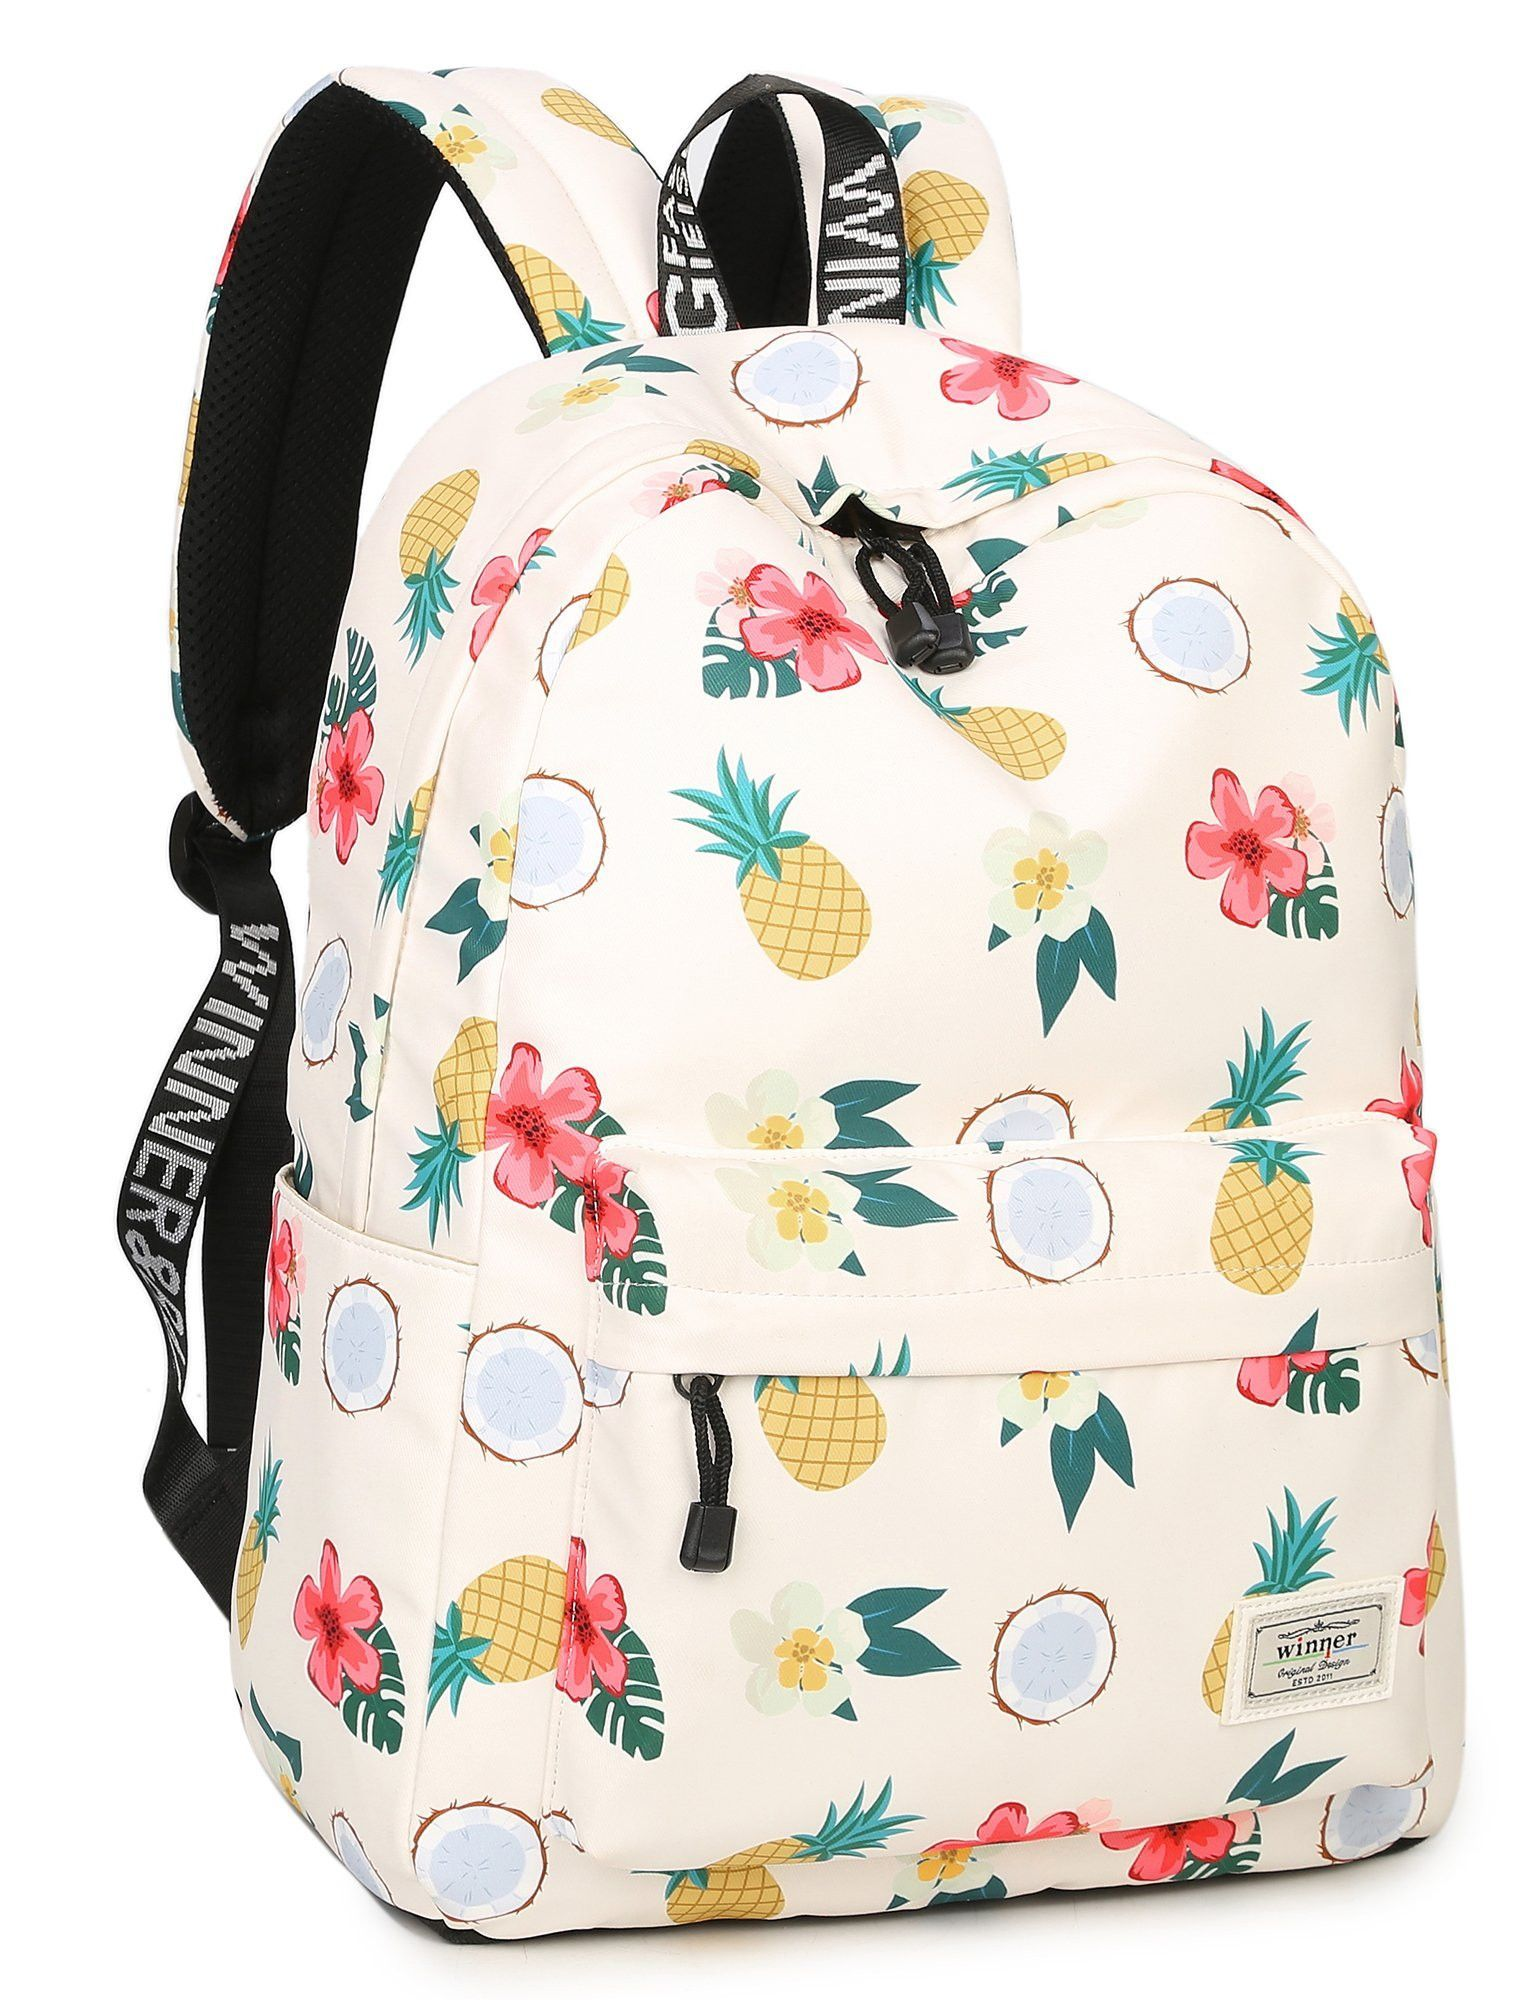 a45ab3241f35 School Bookbags for Girls Floral Pineapple Printed Backpack College Bags  Women Daypack by Leaper